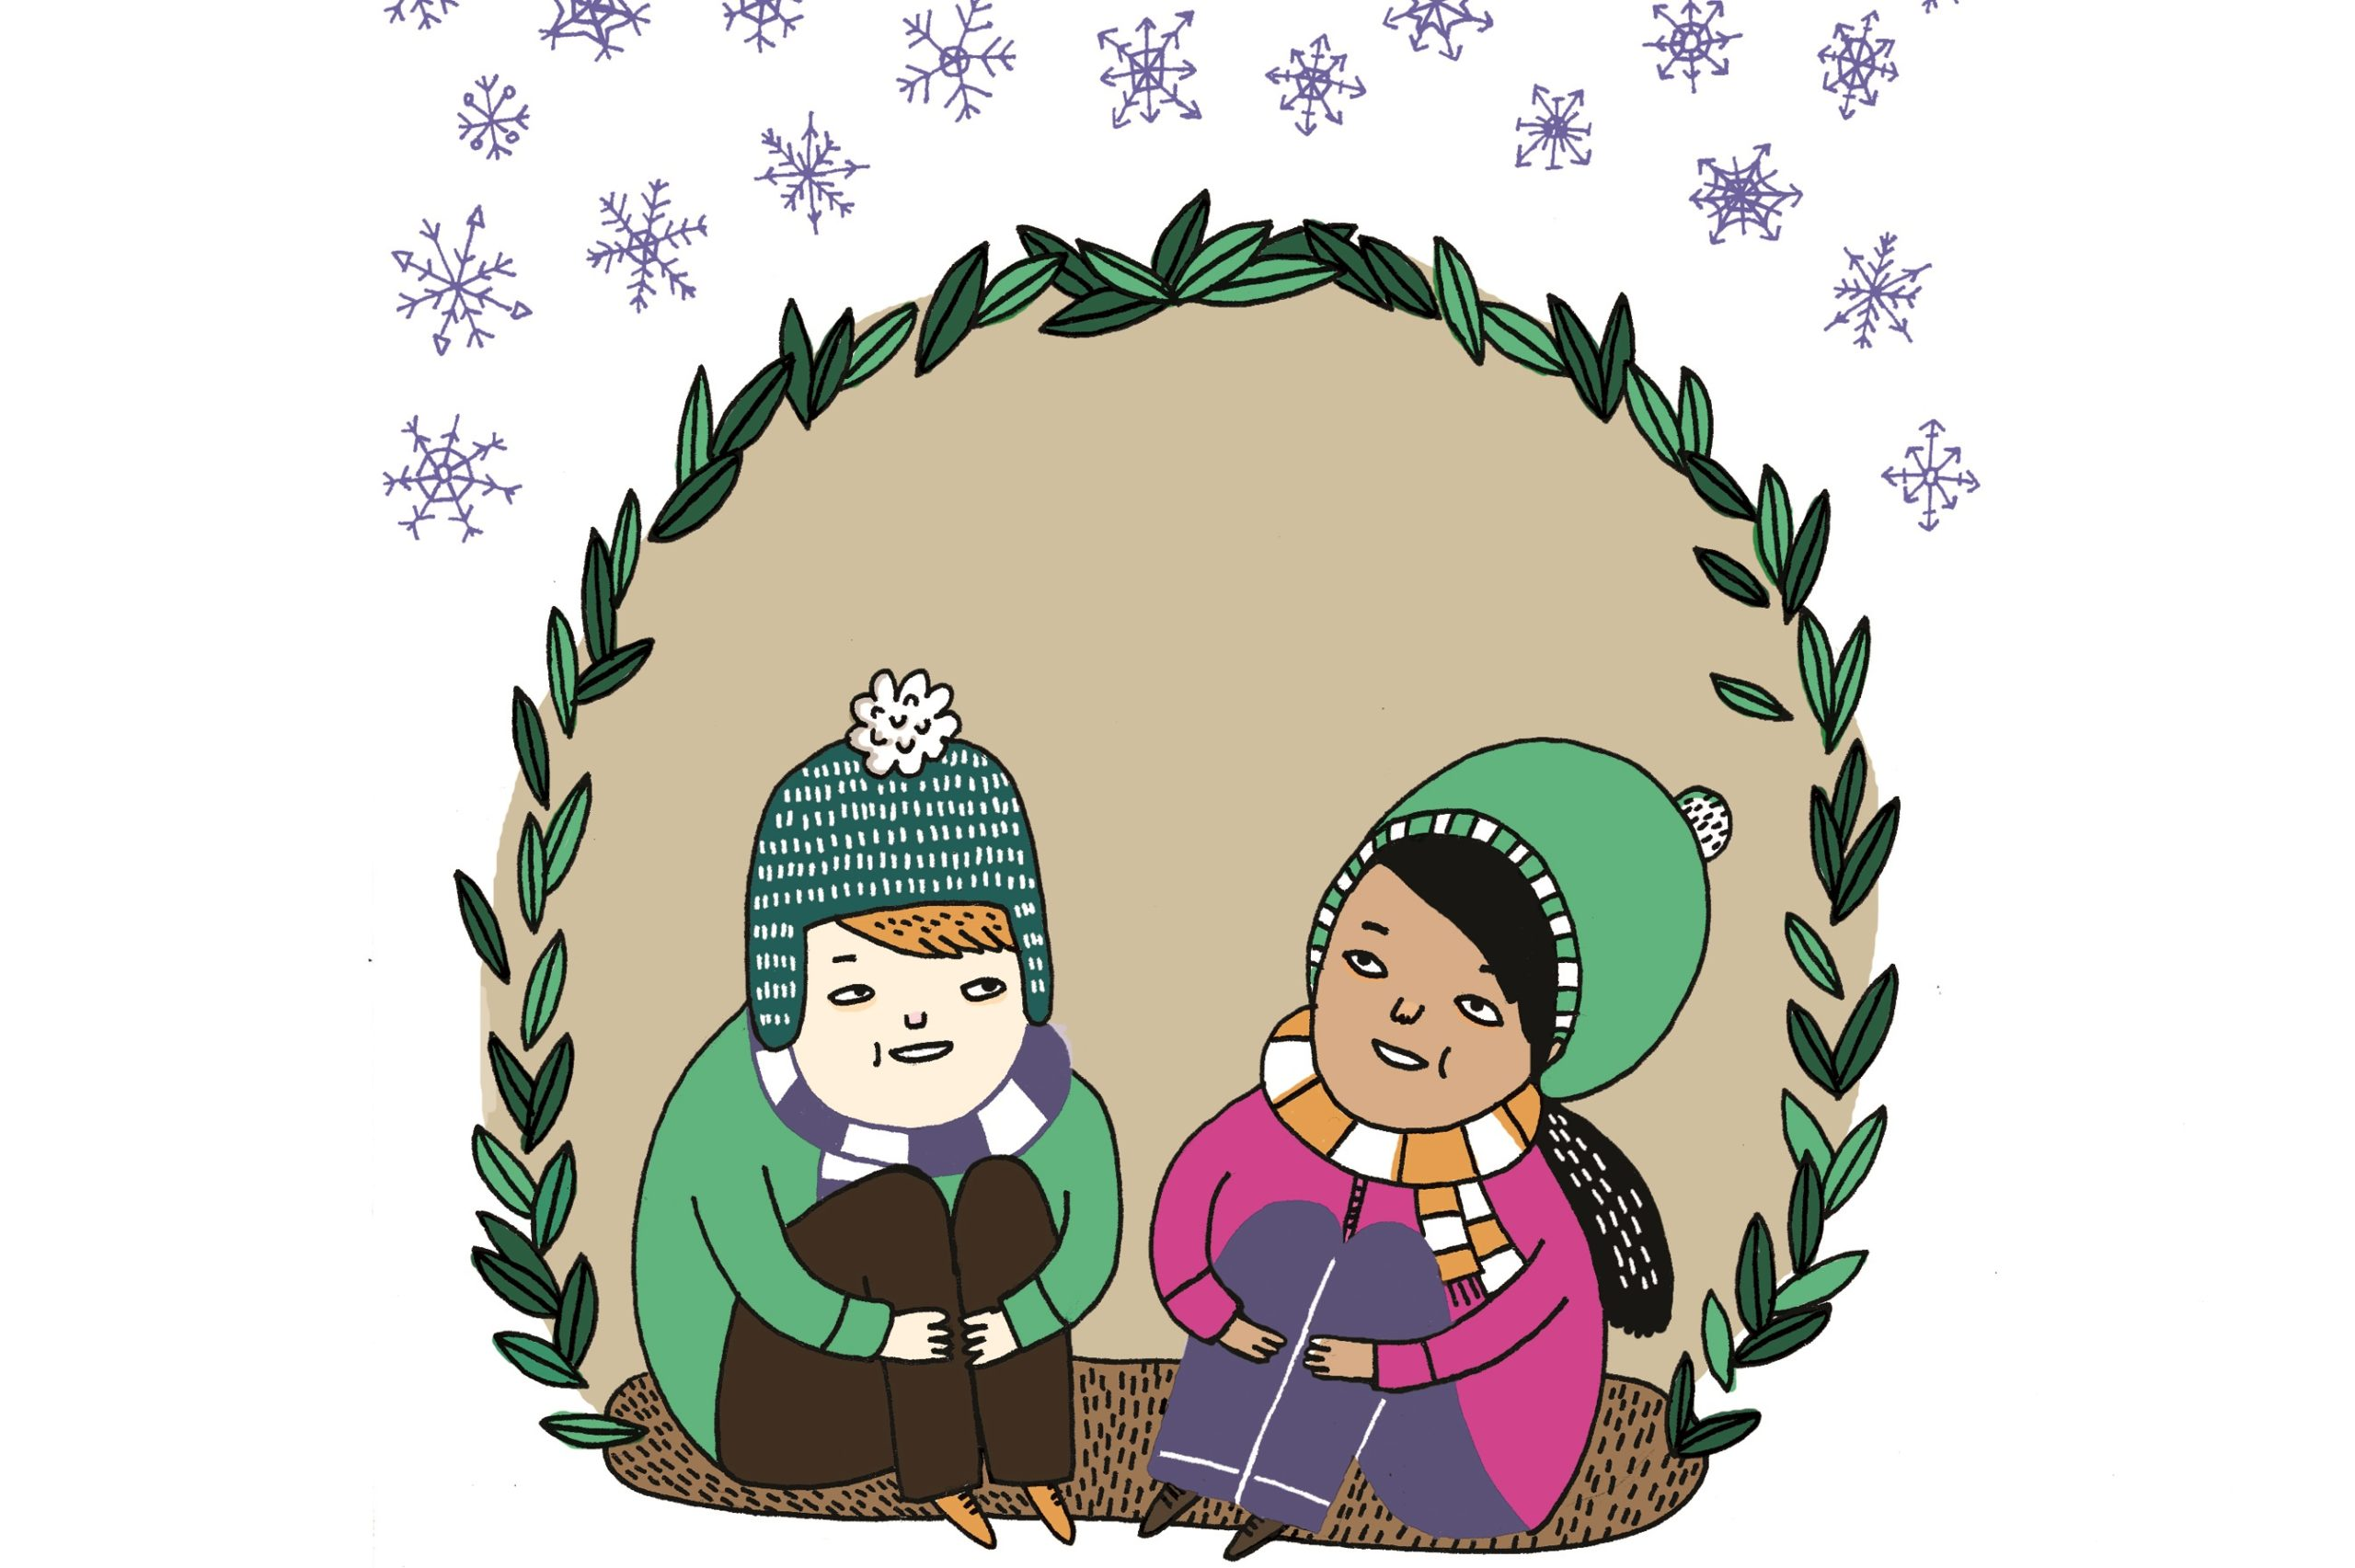 Gemma Correll illustration of two children wearing coats and hats sitting under snow